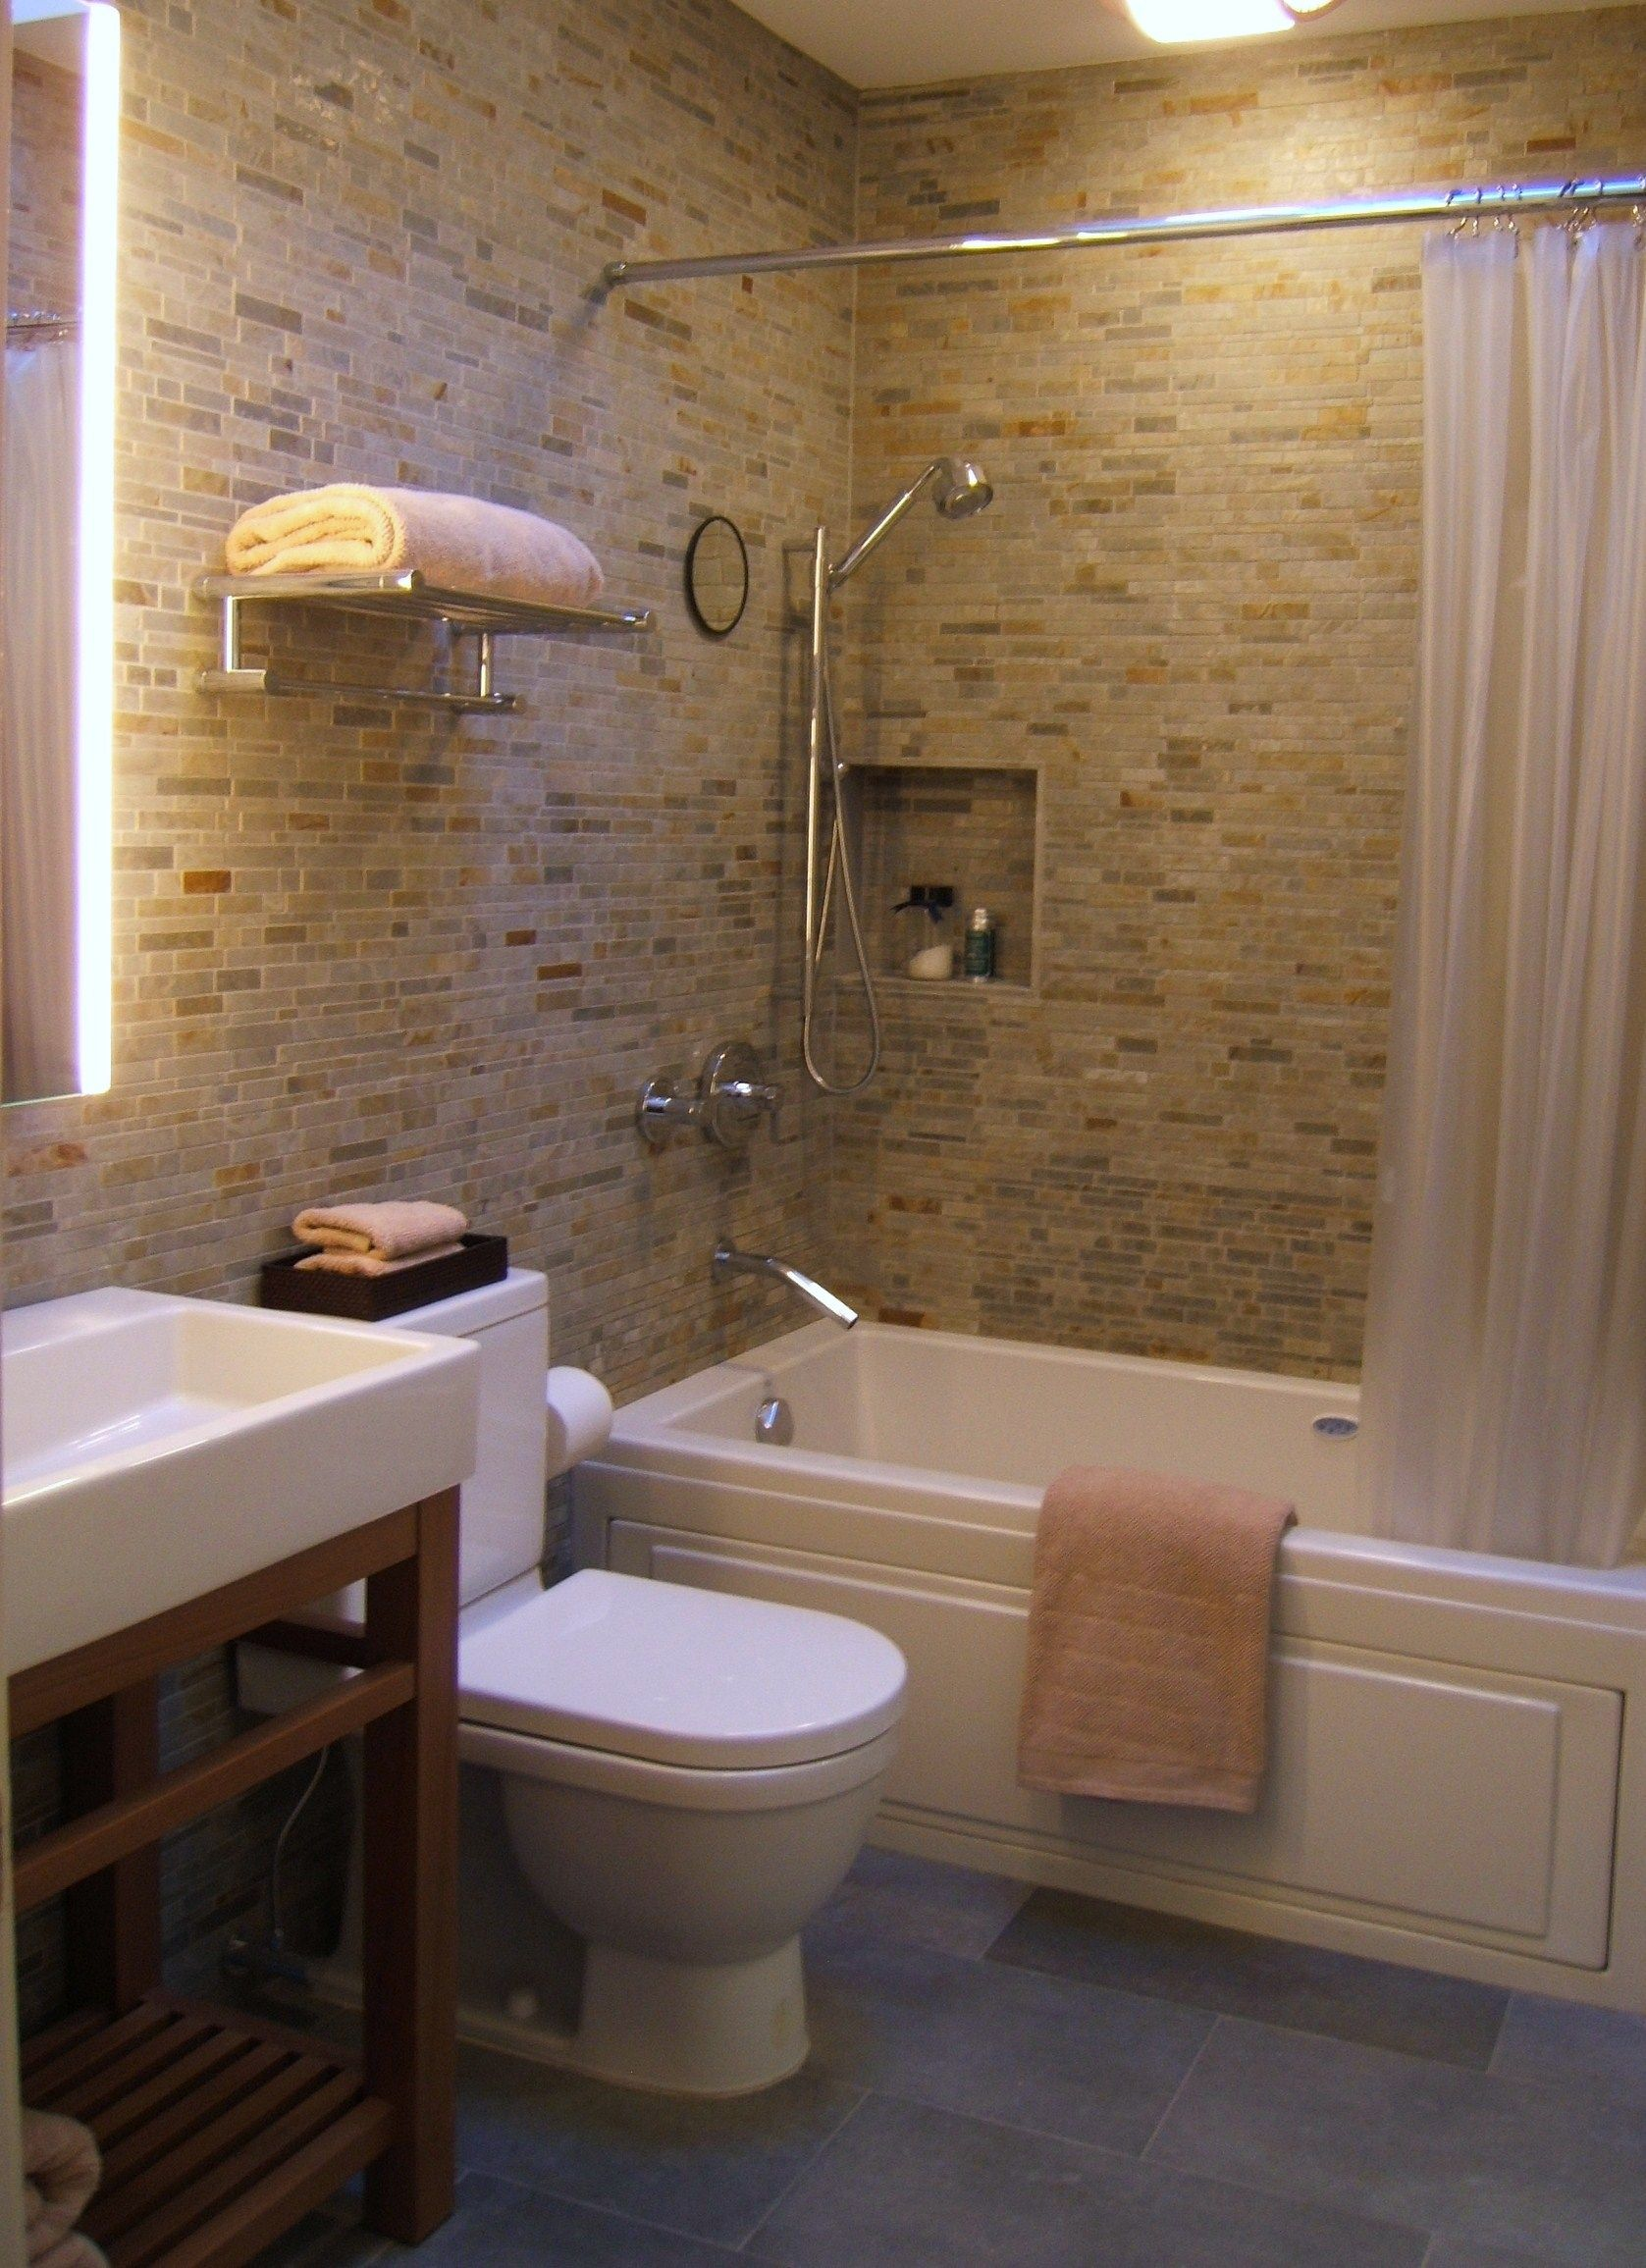 Small bathroom designs south africa small bath for Small bathroom design apartment therapy